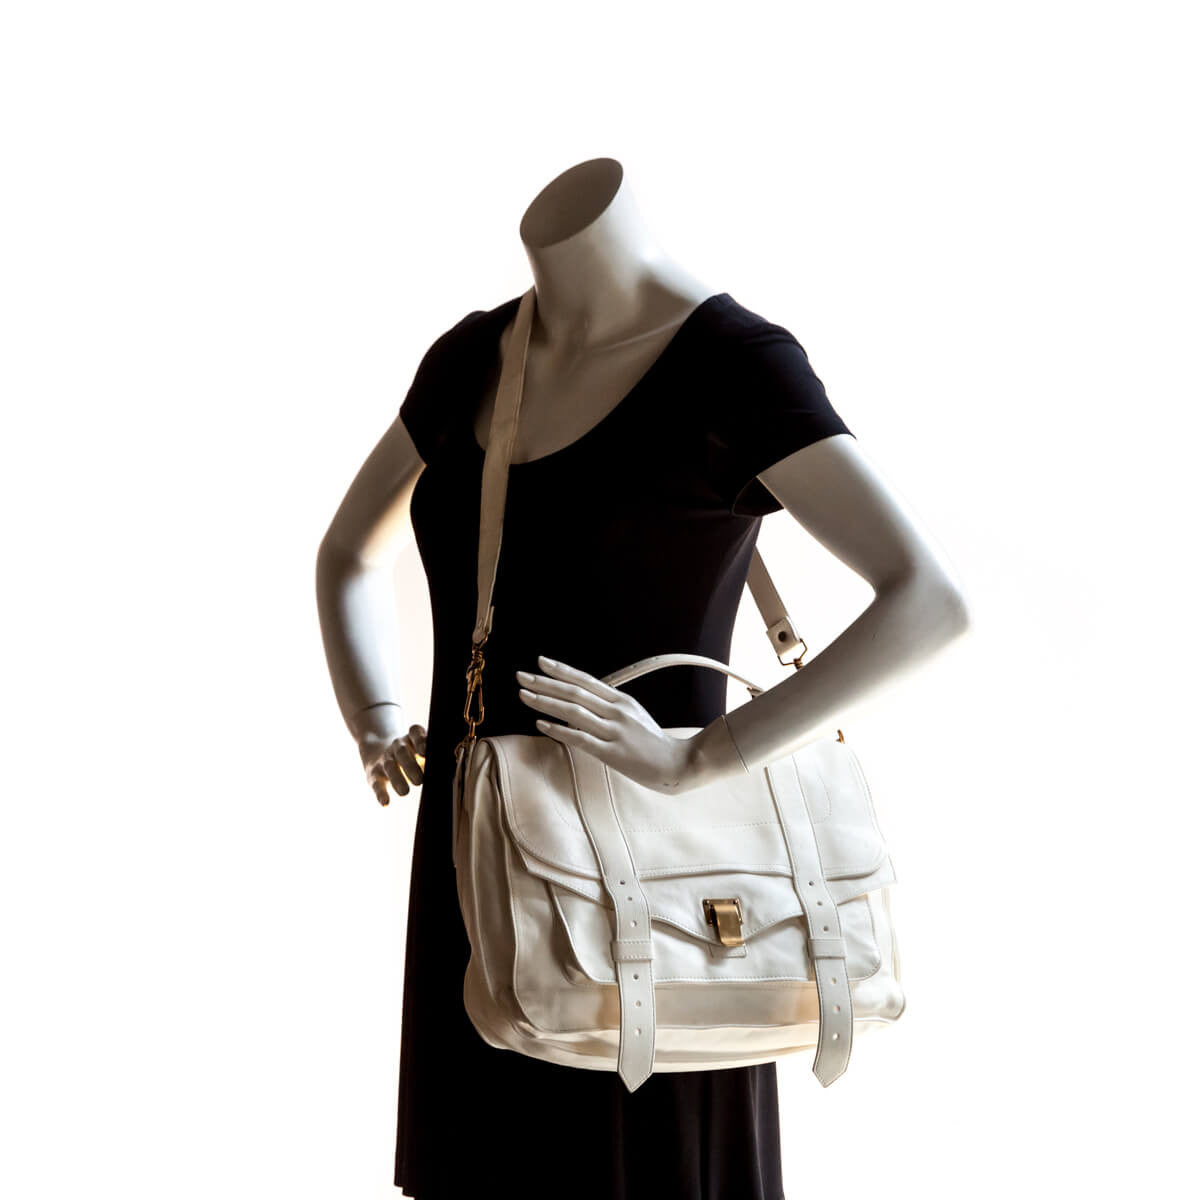 c8b9259900d4 ... Proenza Schouler Bone Lambskin Large PS1 Messenger Bag - LOVE that BAG  - Preowned Authentic Designer